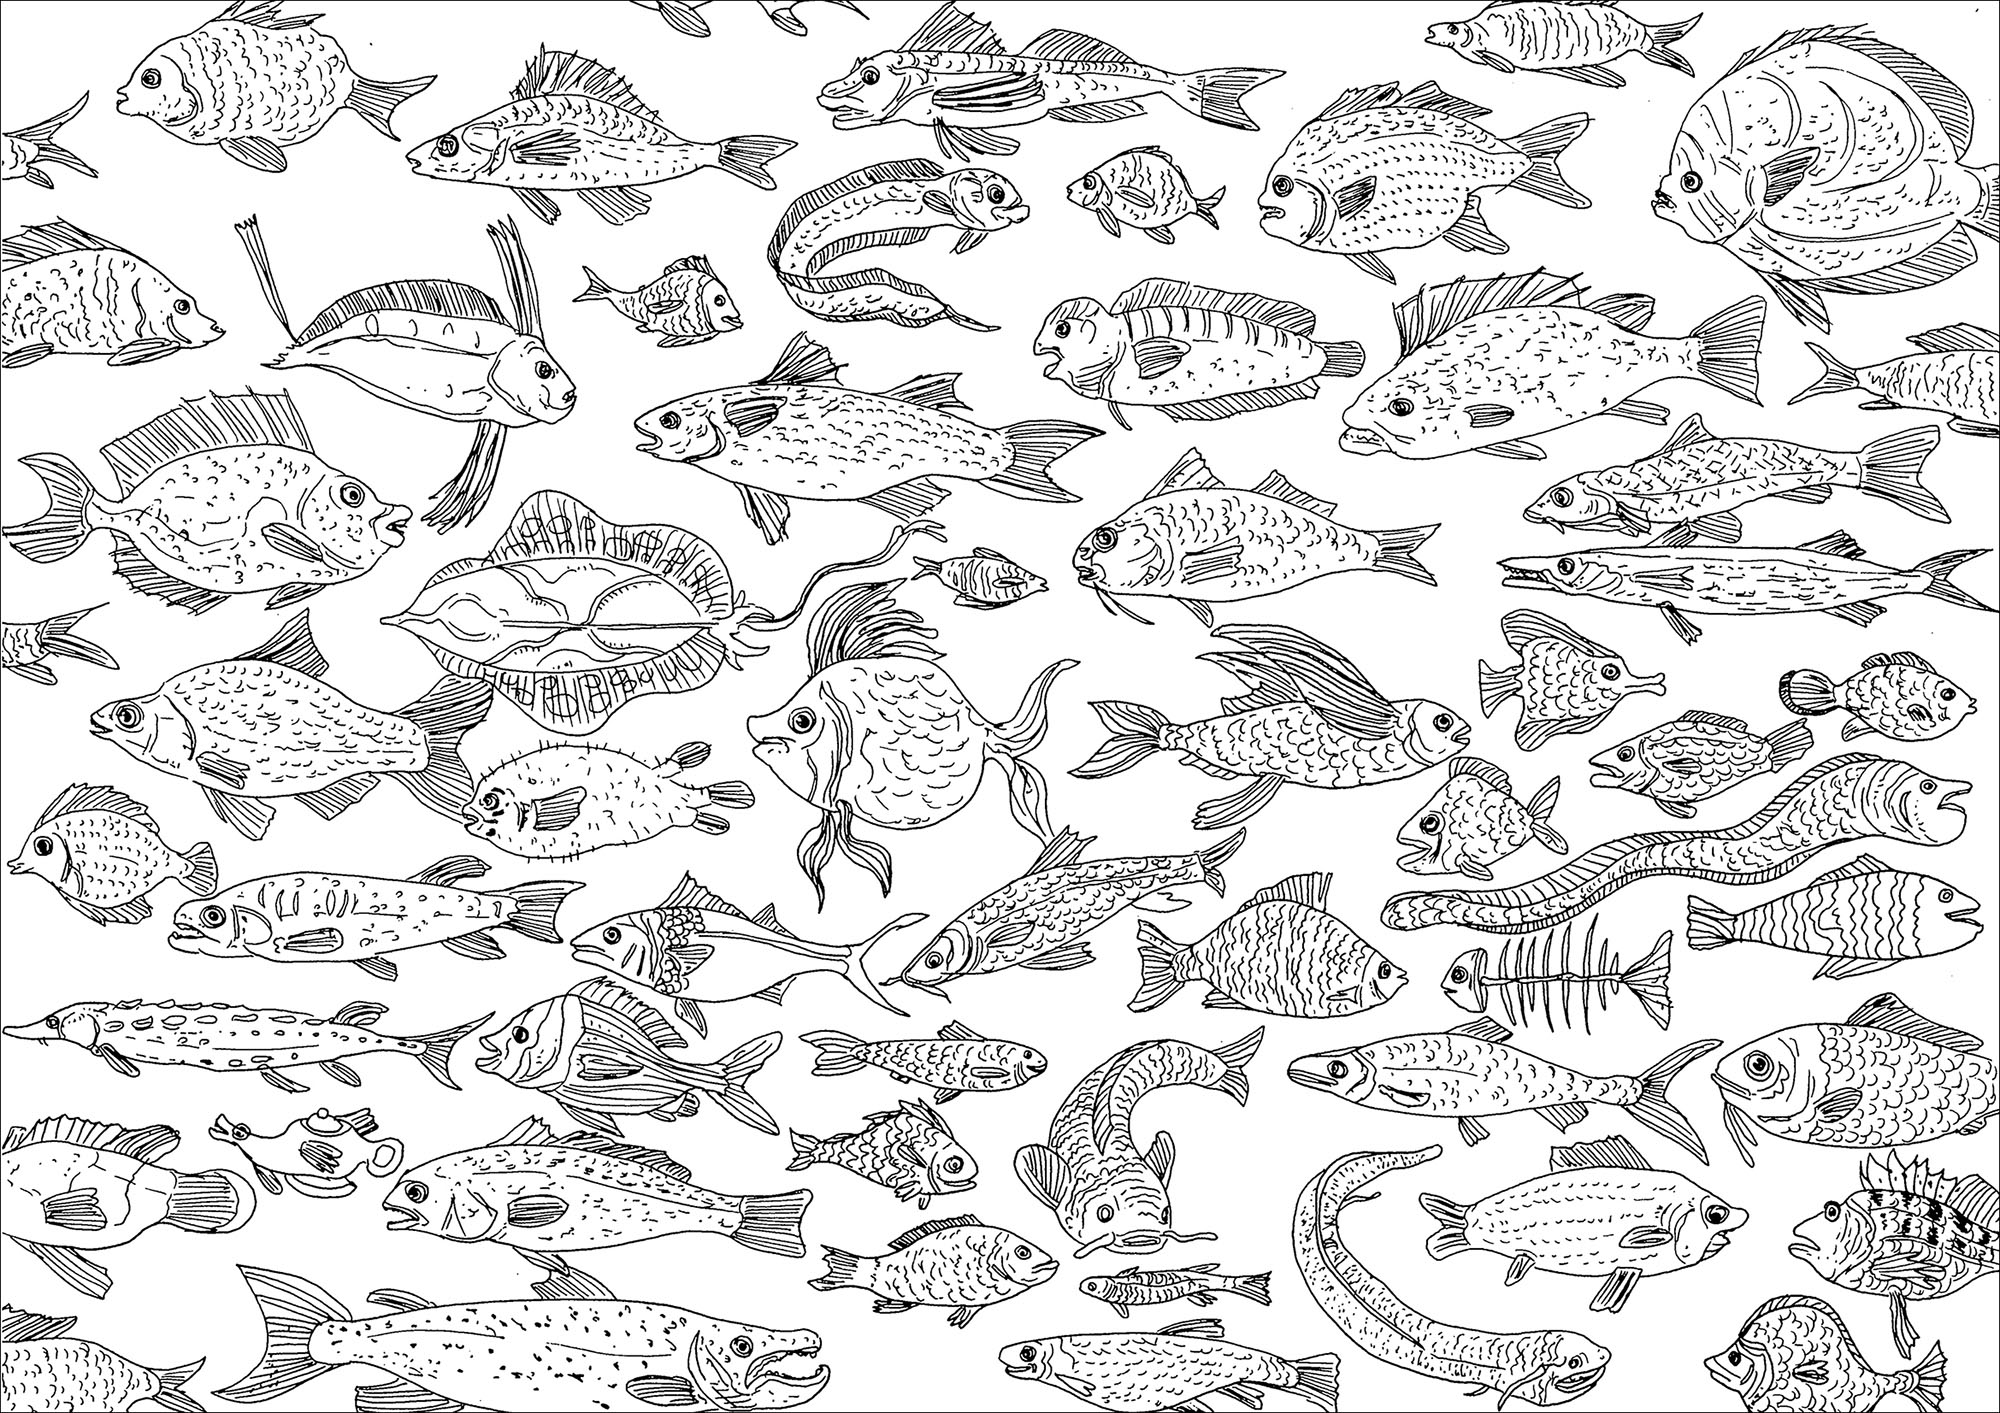 Incredible fishes swimming in the sea, just waiting for colors